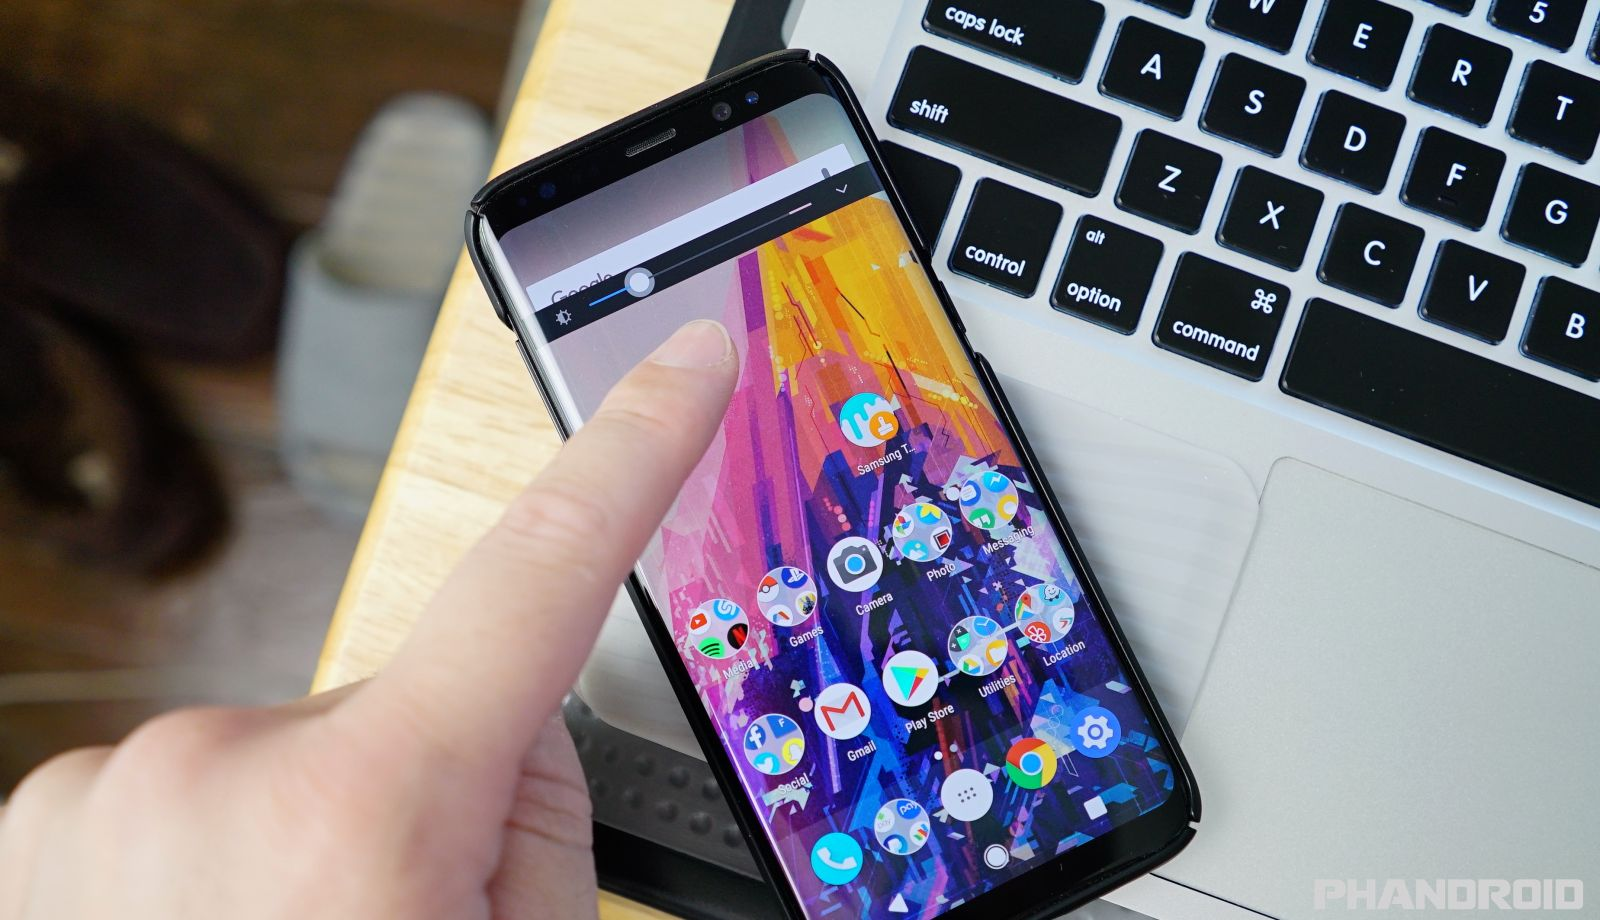 samsung galaxy s8 va s8 plus da co the cap nhat android oreo 80 hinh anh 2